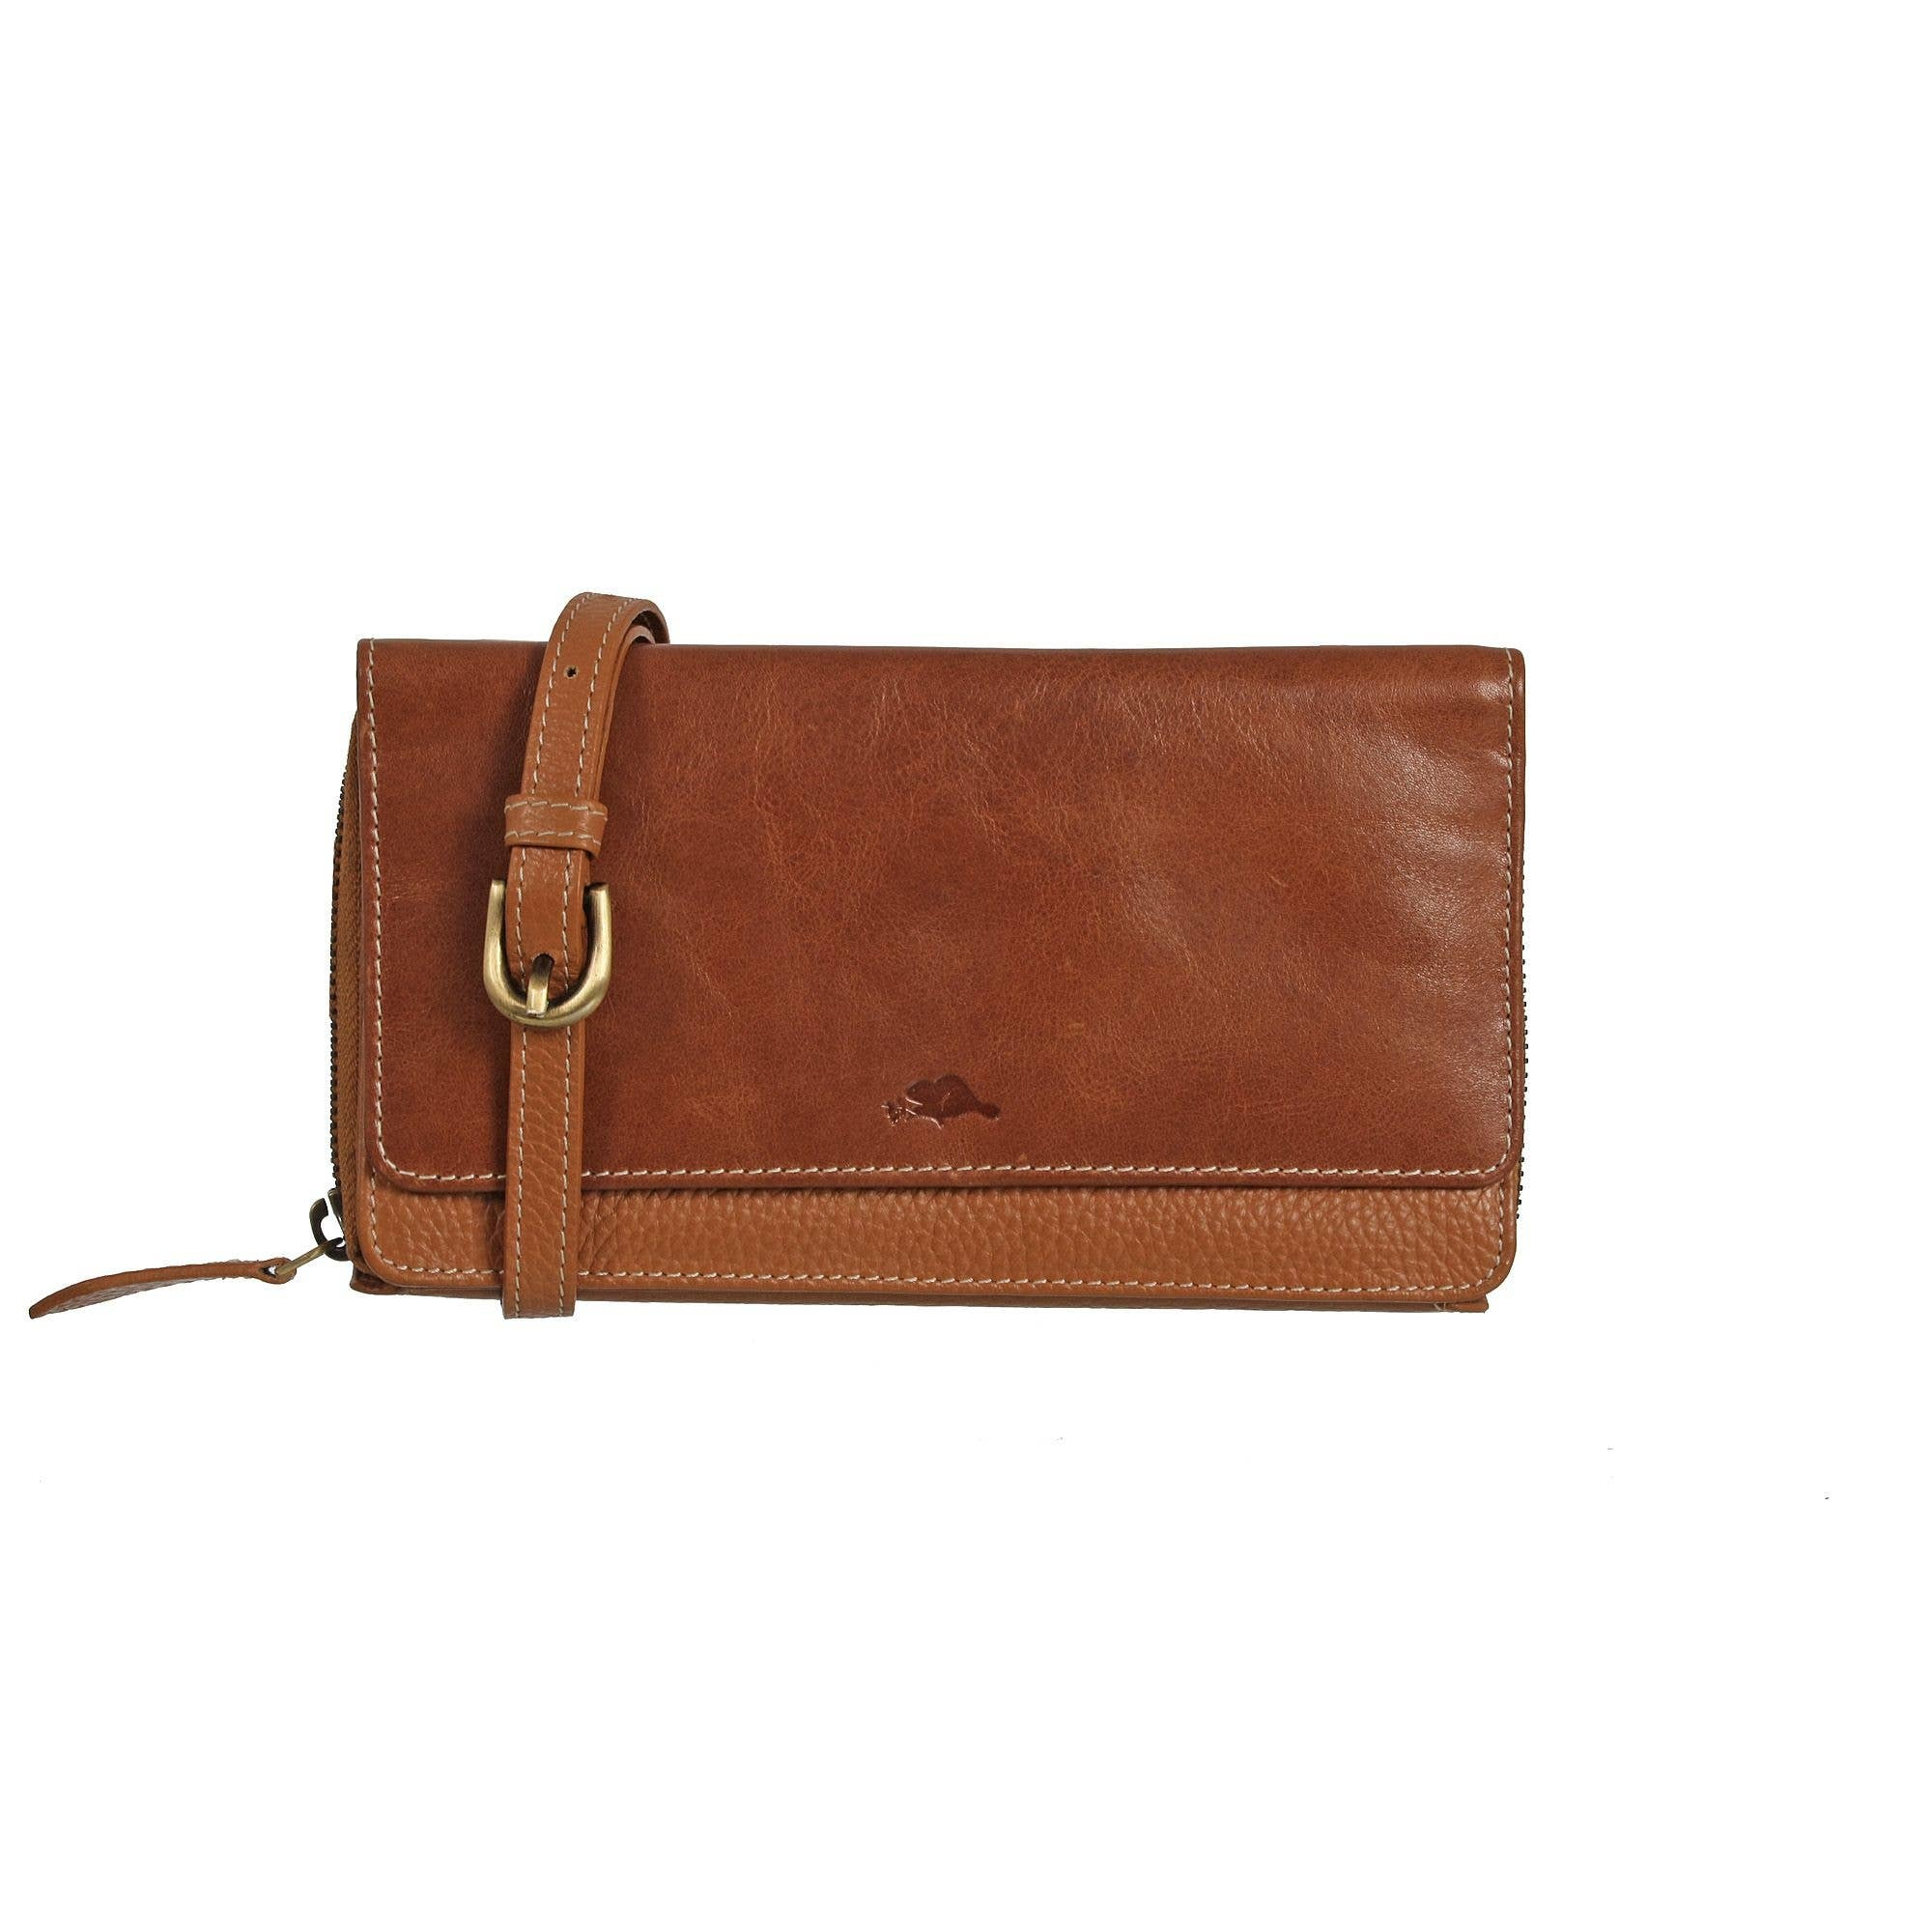 ROOTS LADIES WALLET ON A STRING CARMEL